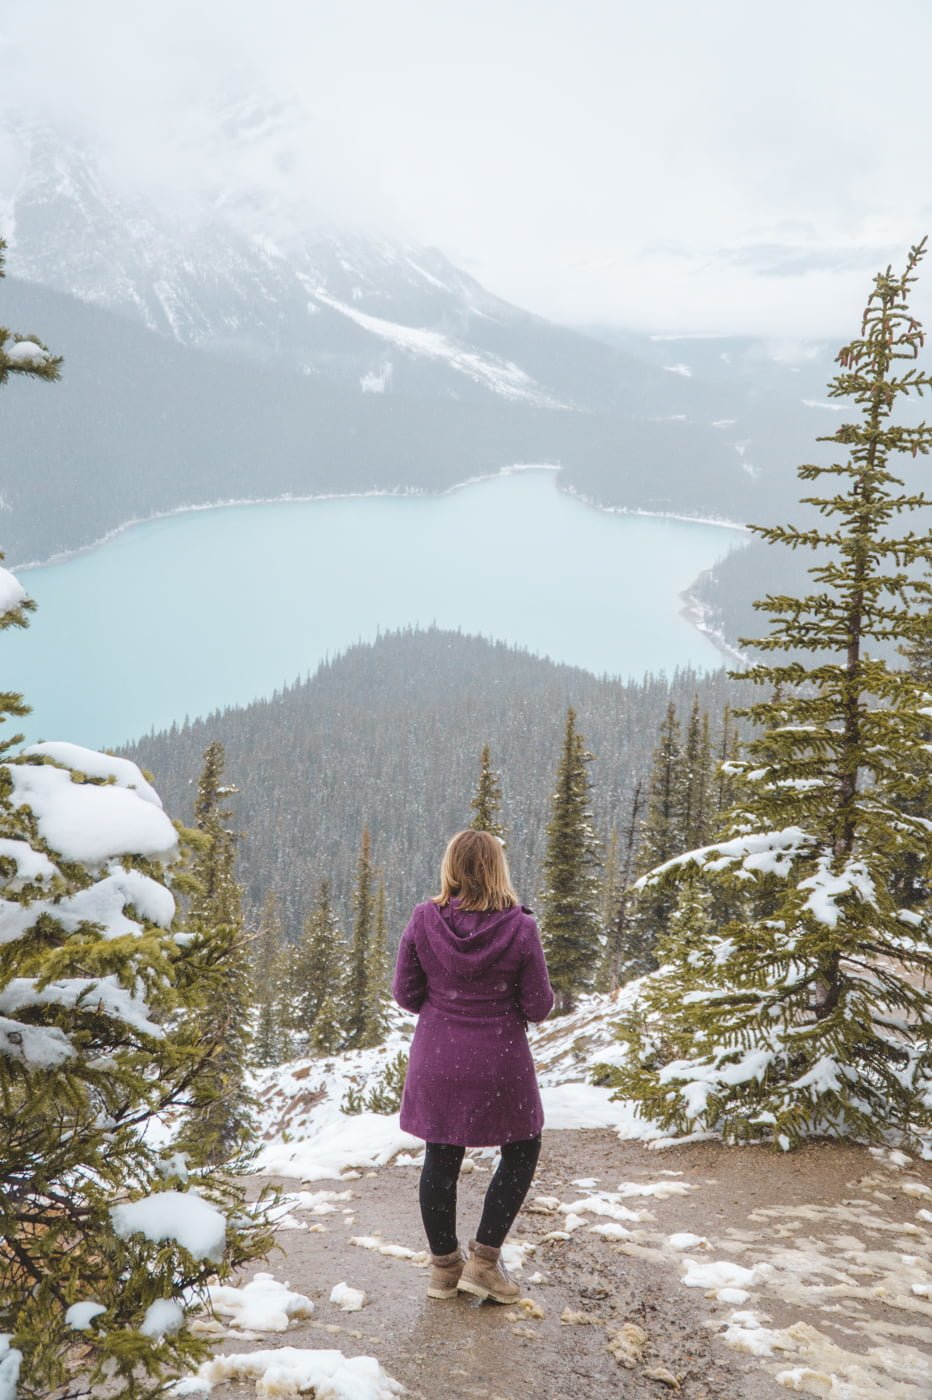 Admiring Peyto Lake, one of the best and prettiest lakes here (and one of the top reasons to travel to Banff National Park).